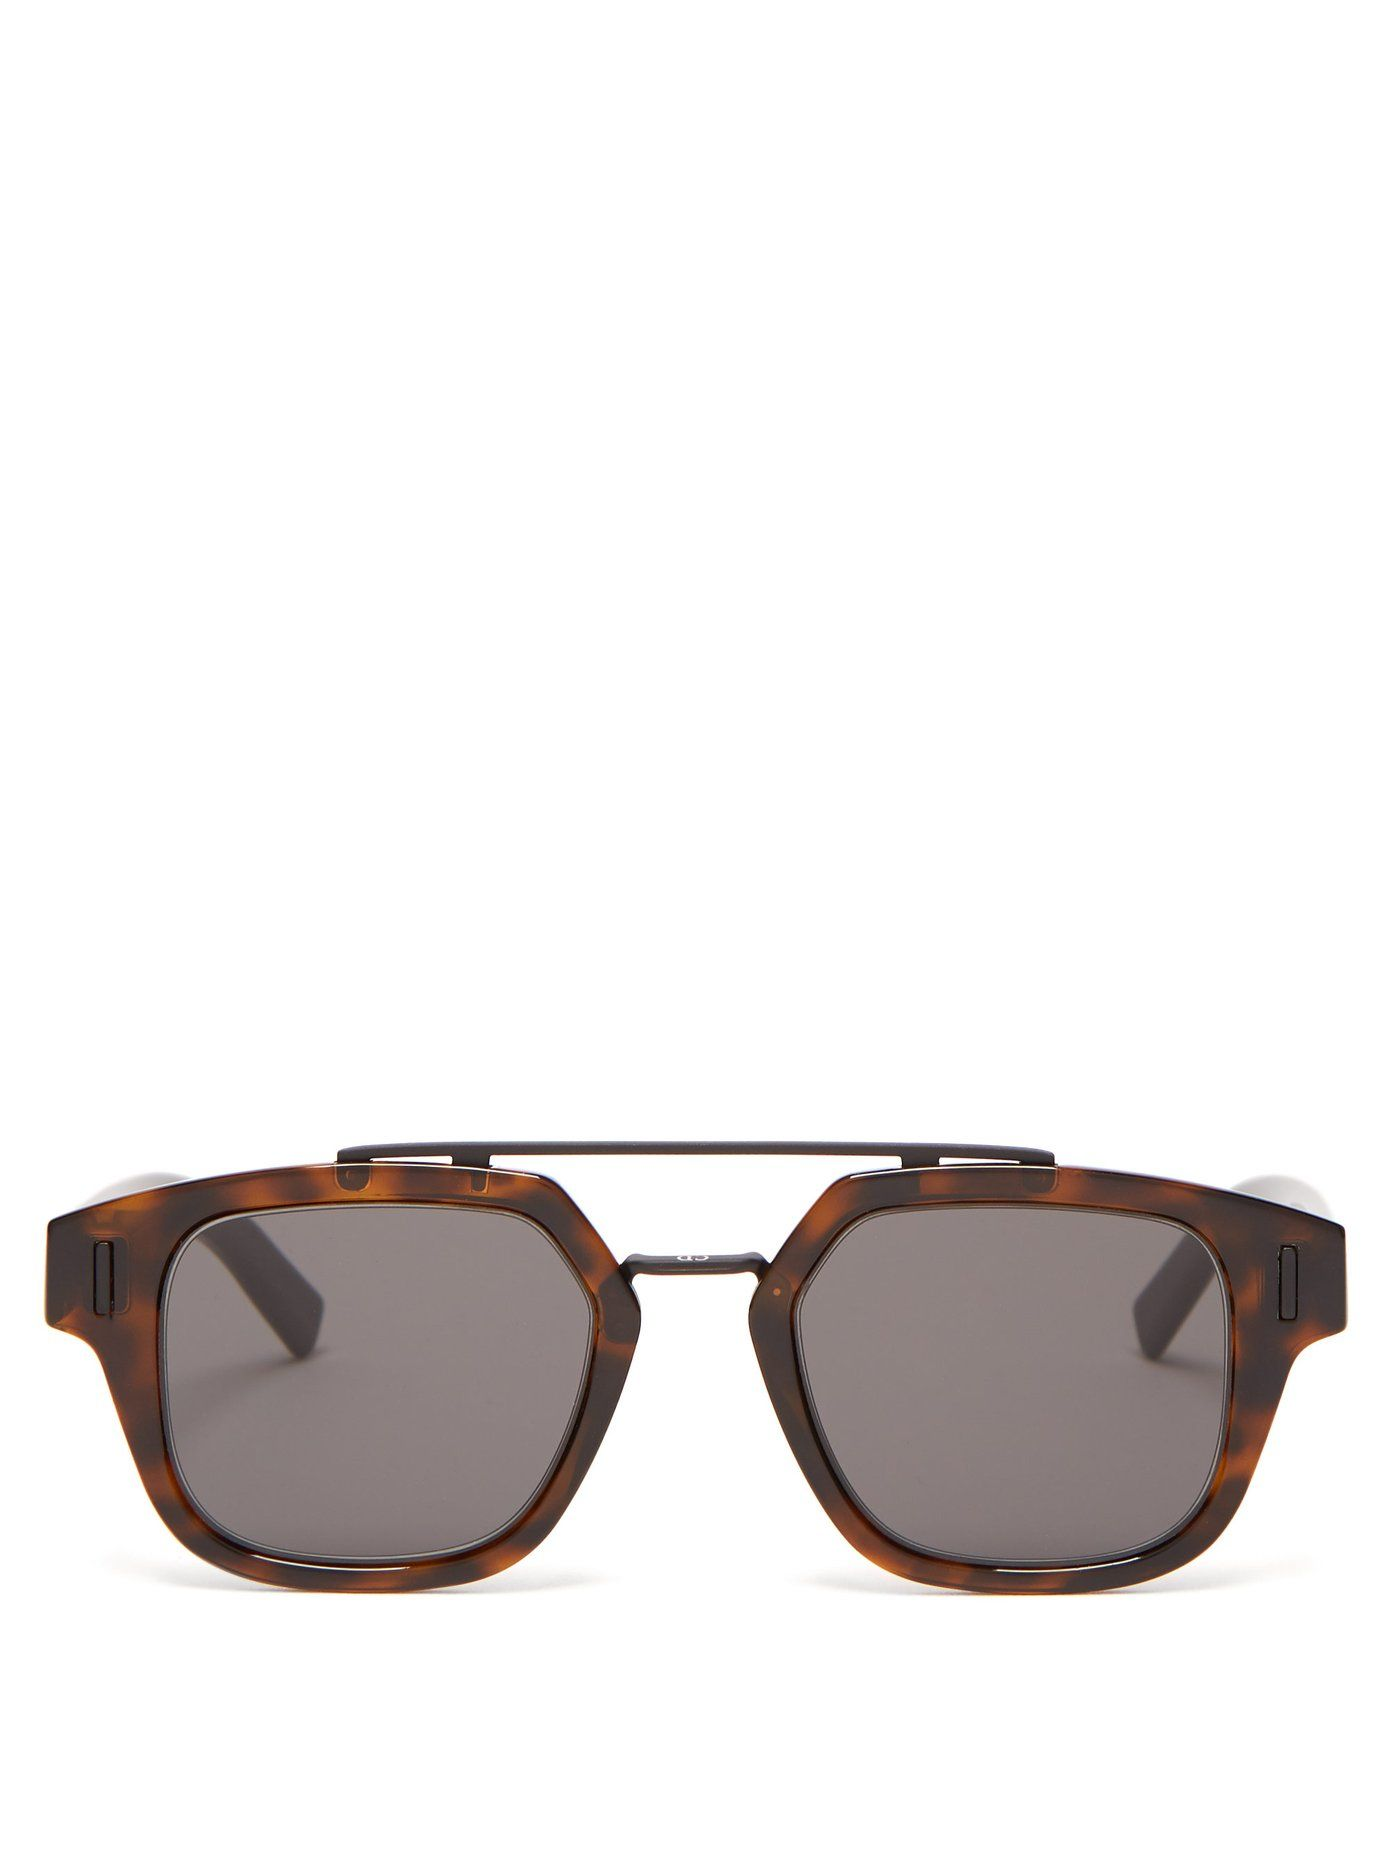 9bbe59a75b8cc DiorFraction1 acetate and metal sunglasses